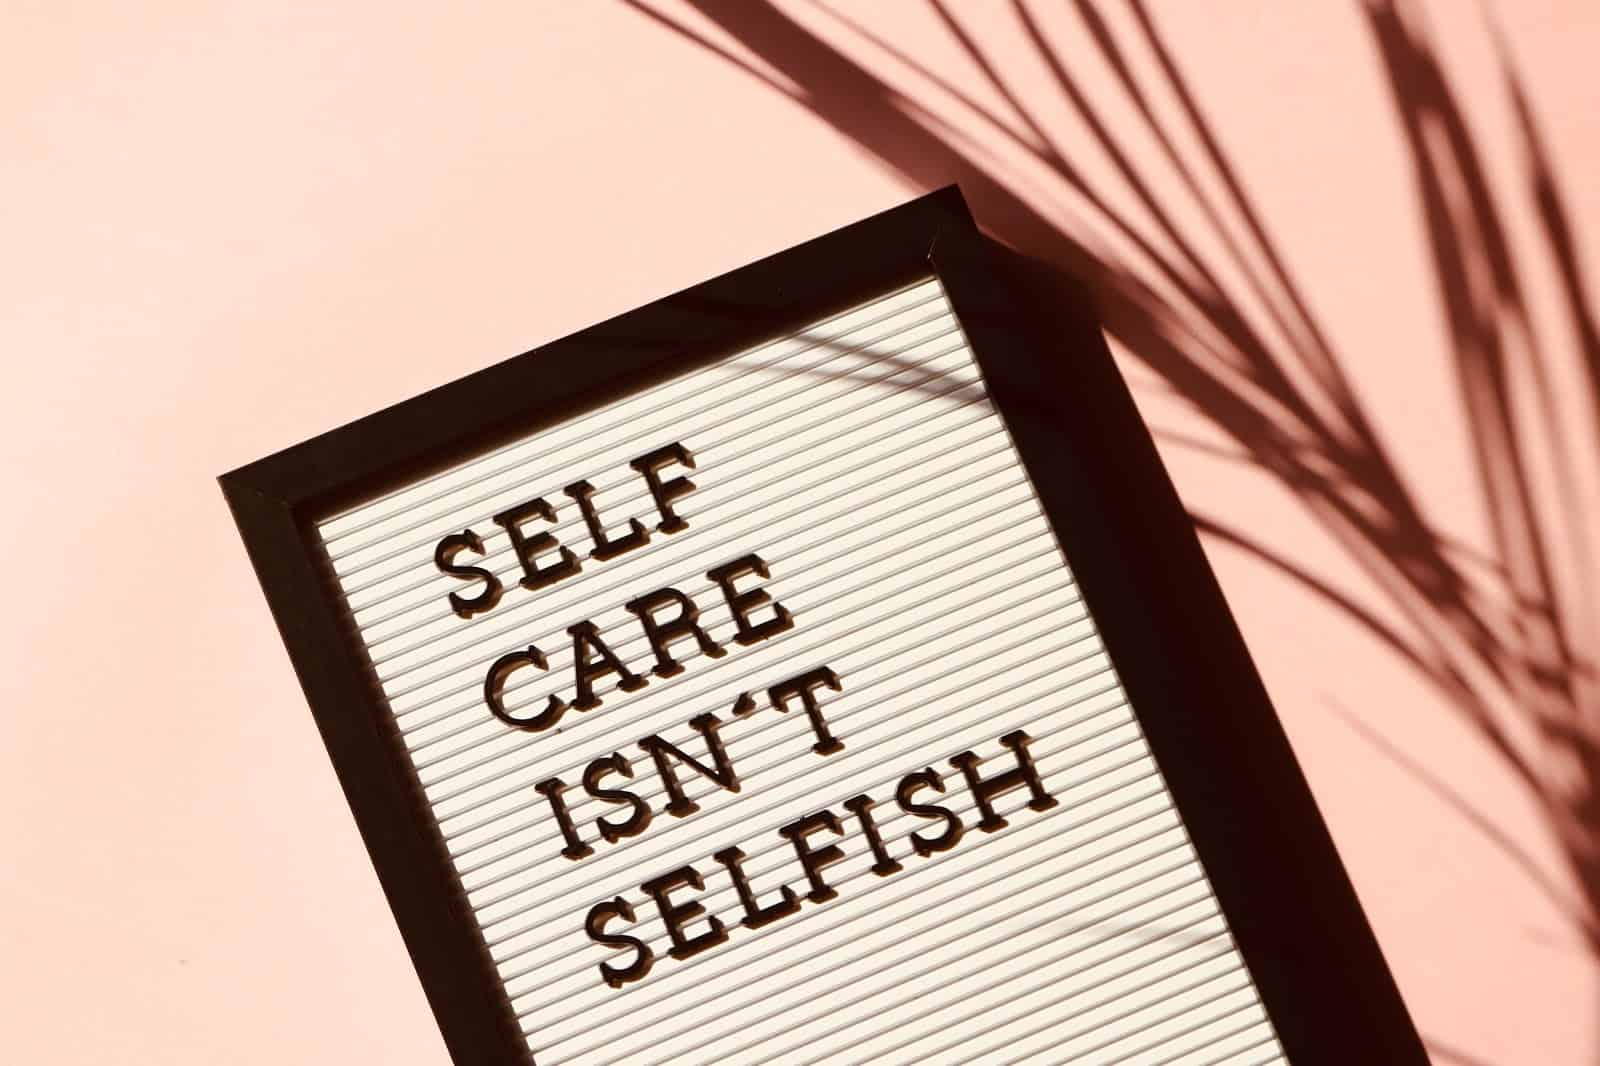 self care isn t selfish signage 2821823